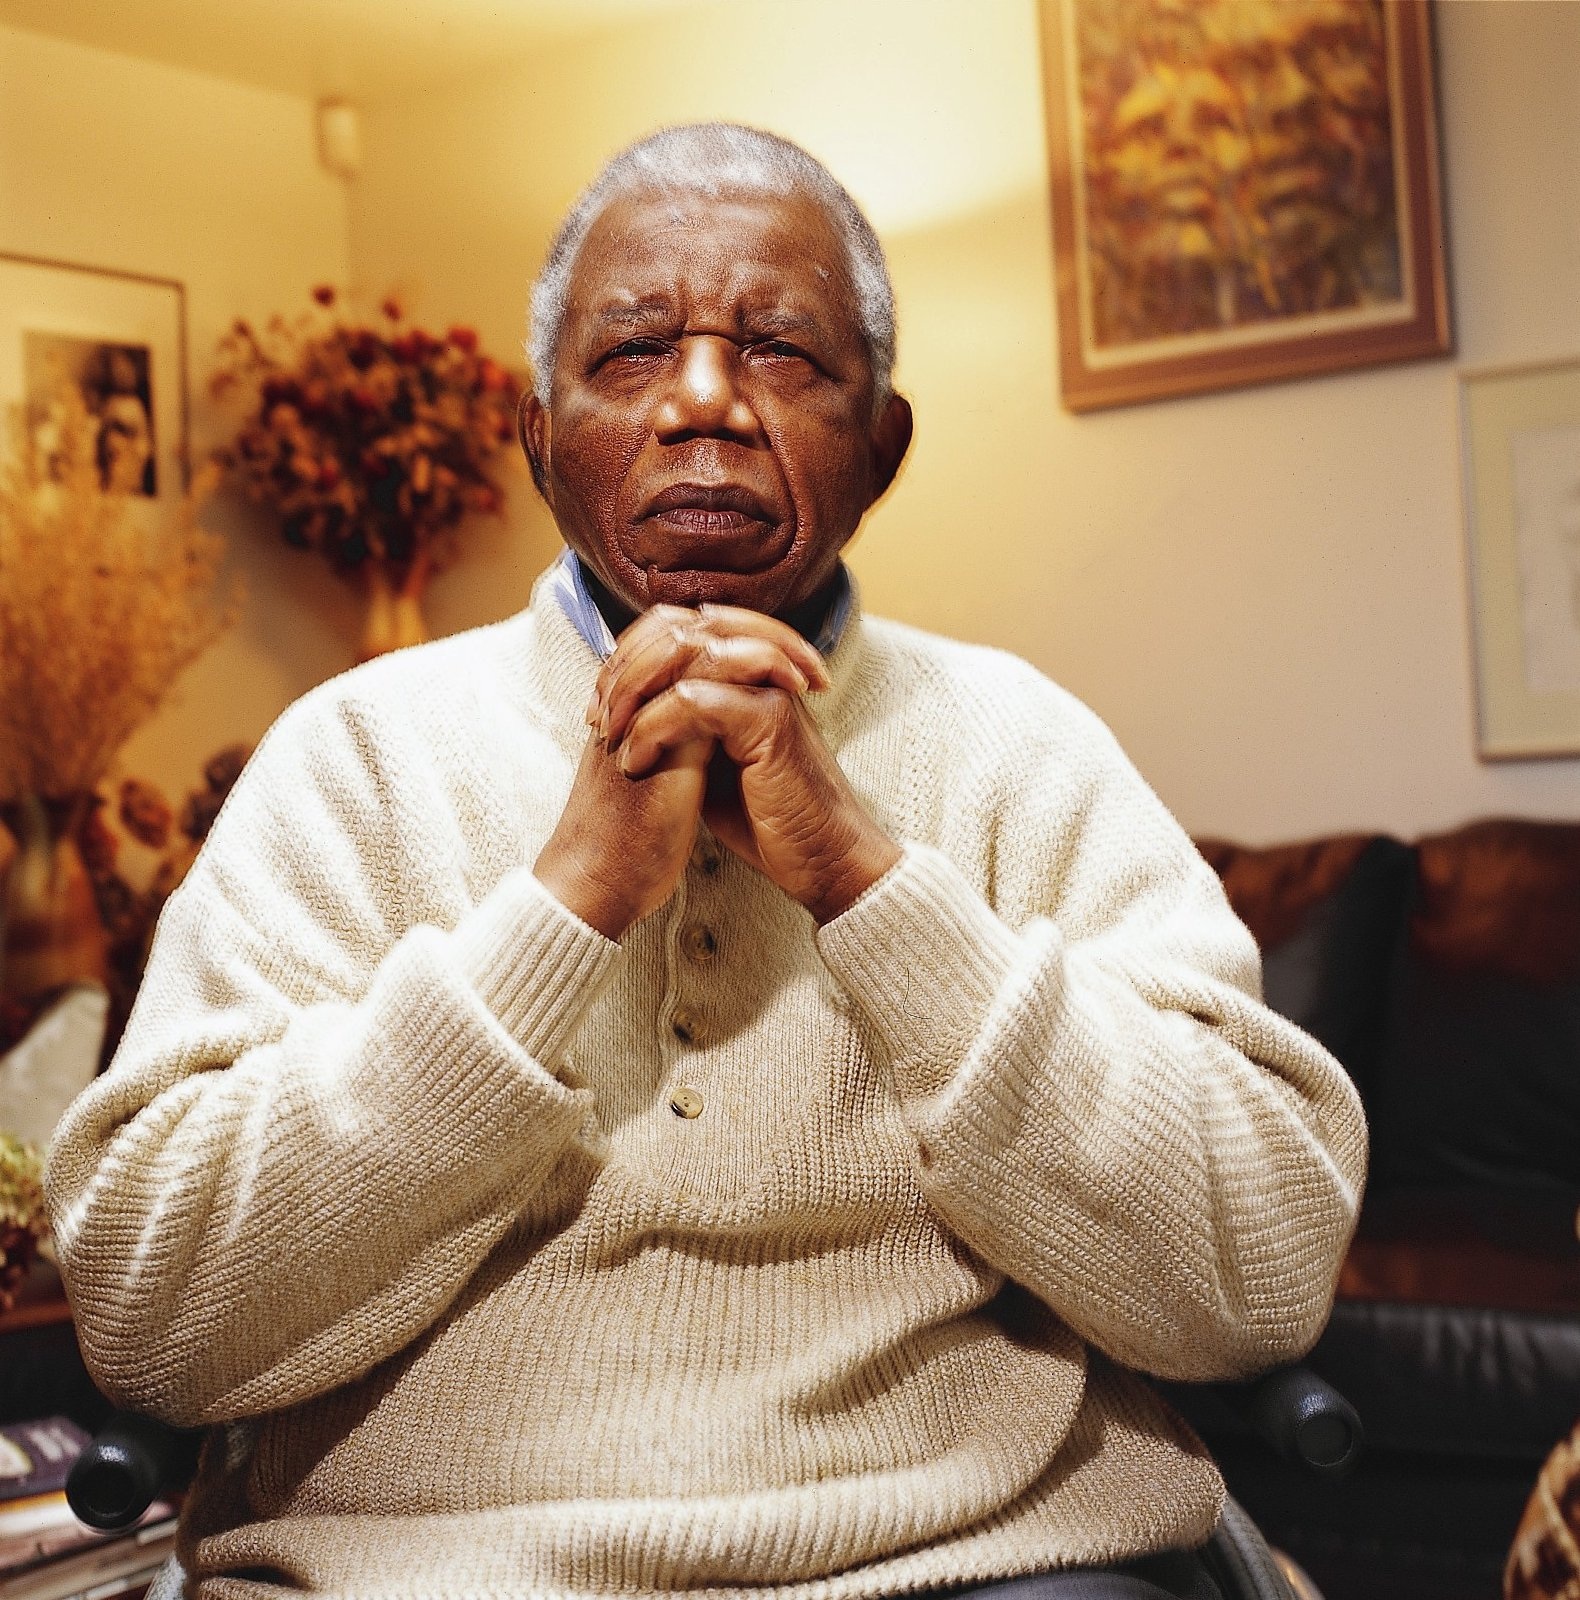 Poetry and the Spirits of Literature: Silent Mortar (For Chinua Achebe)